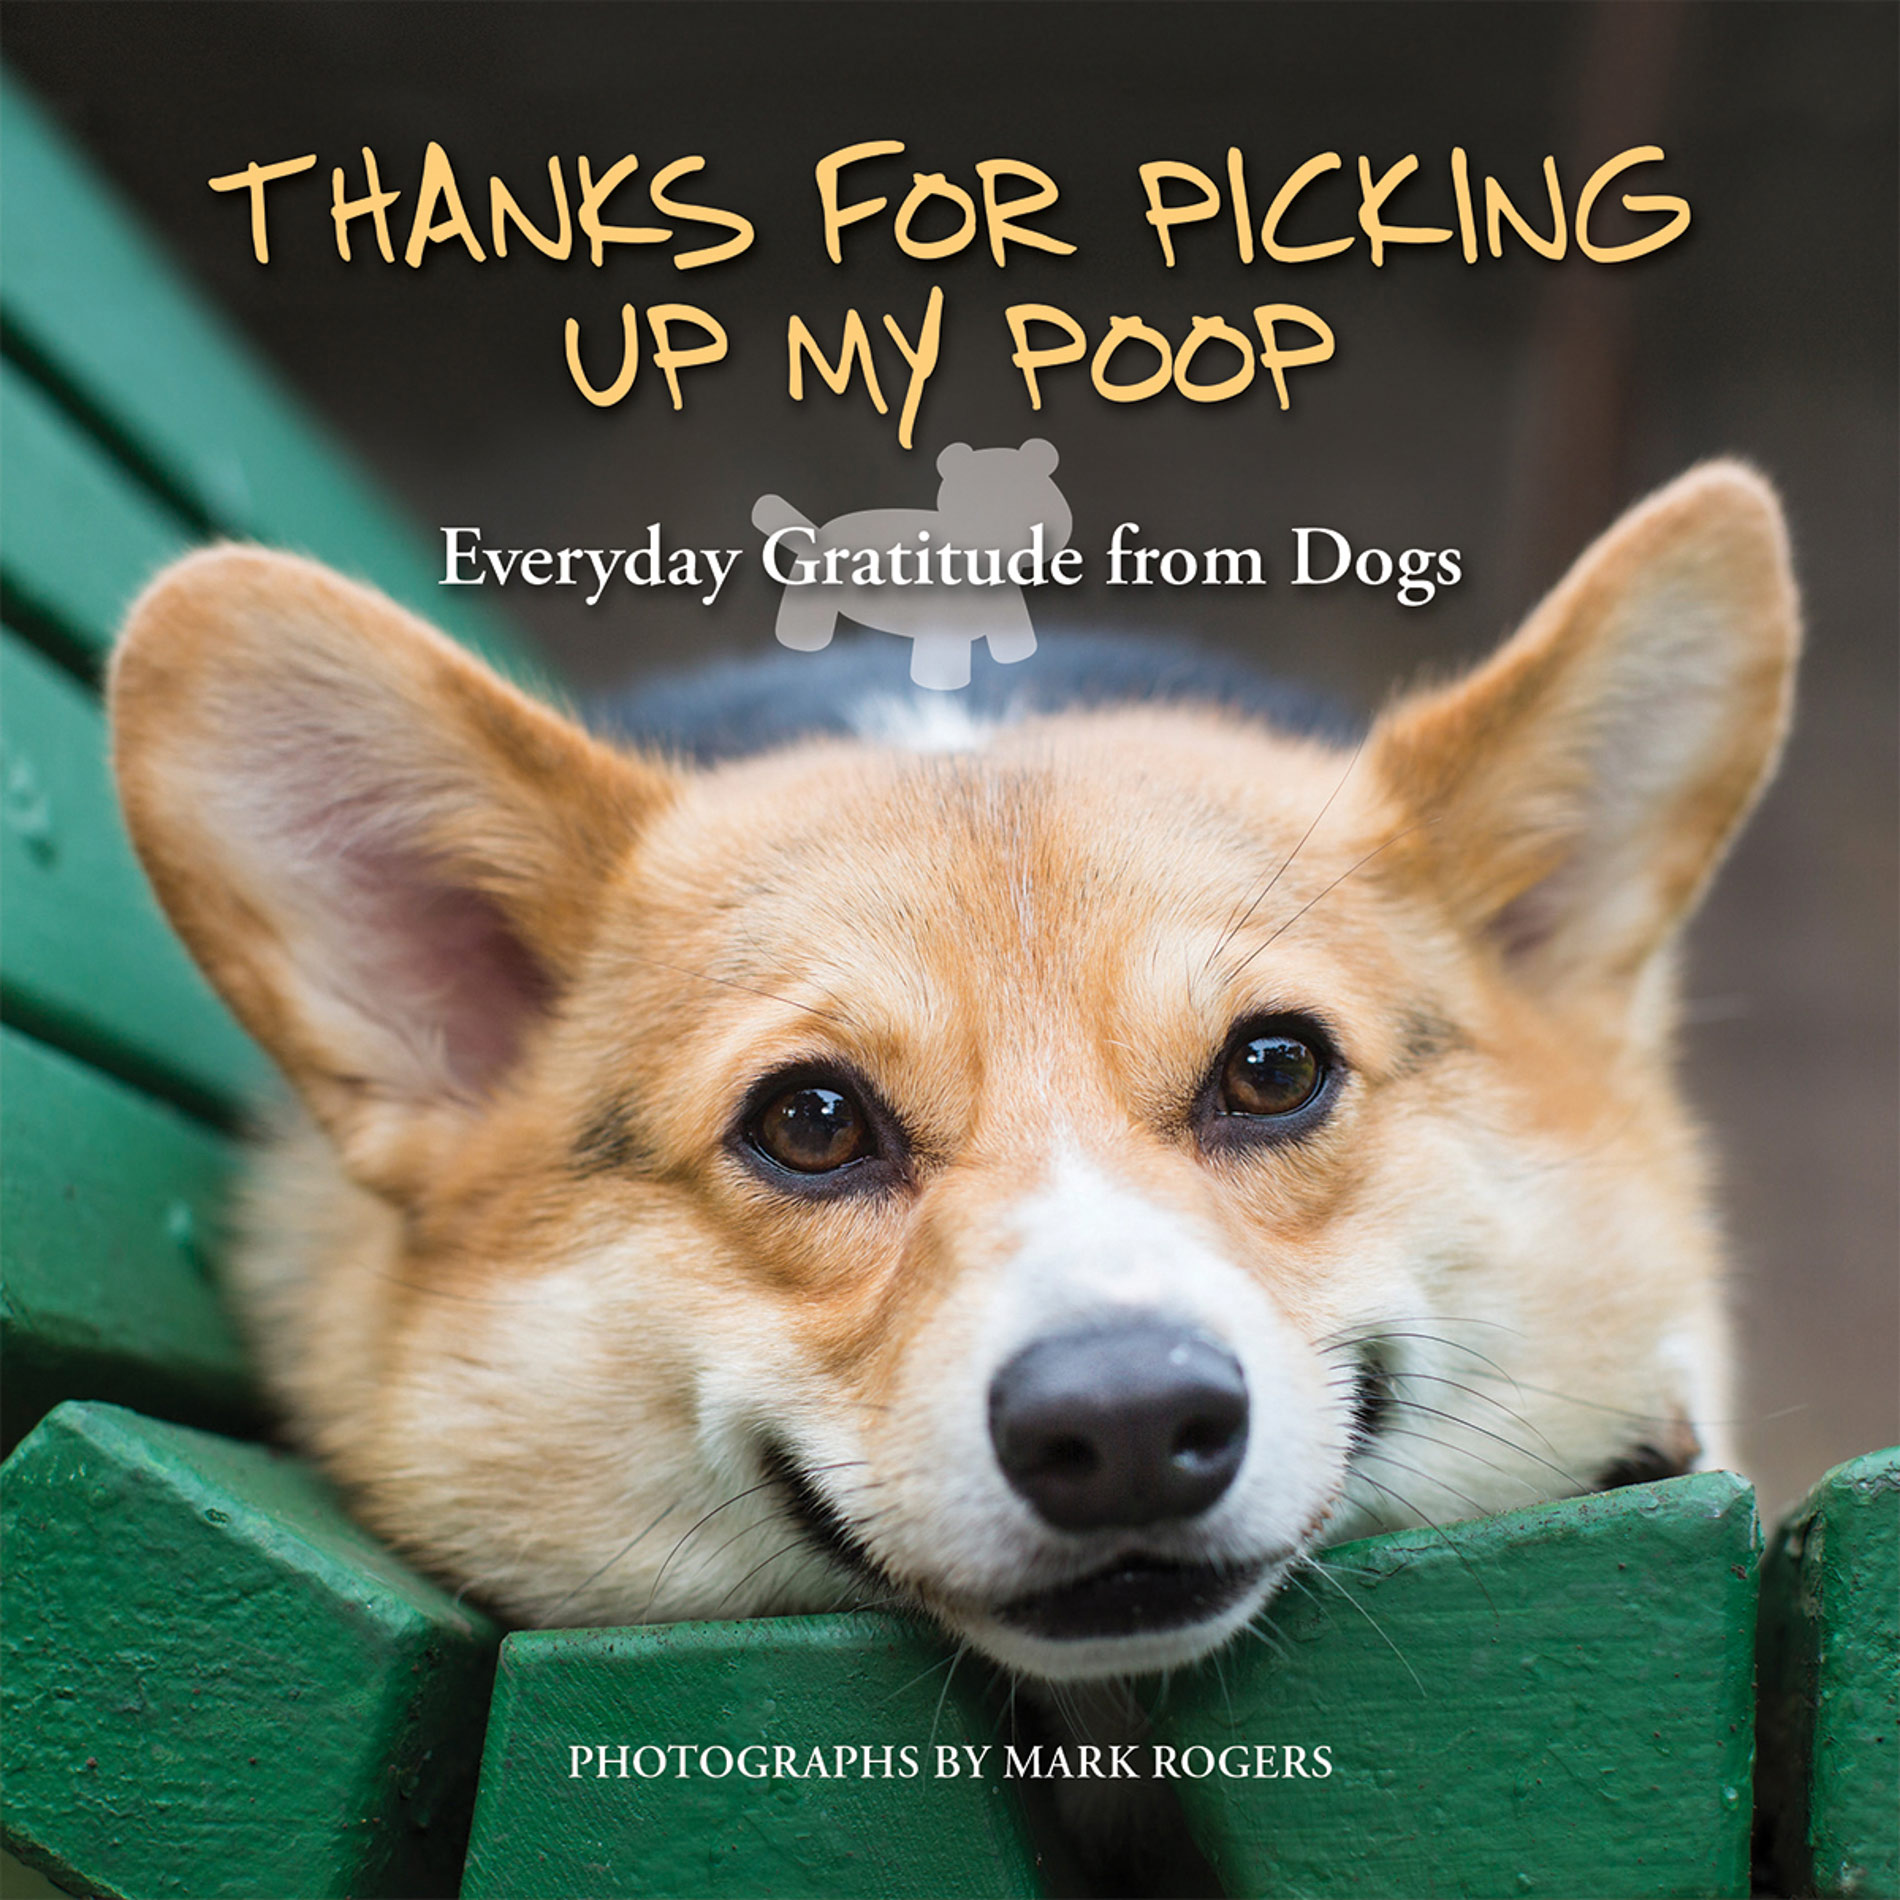 Editorial Photography | Thanks for Picking Up  My Poop Book photos by Mark Rogers